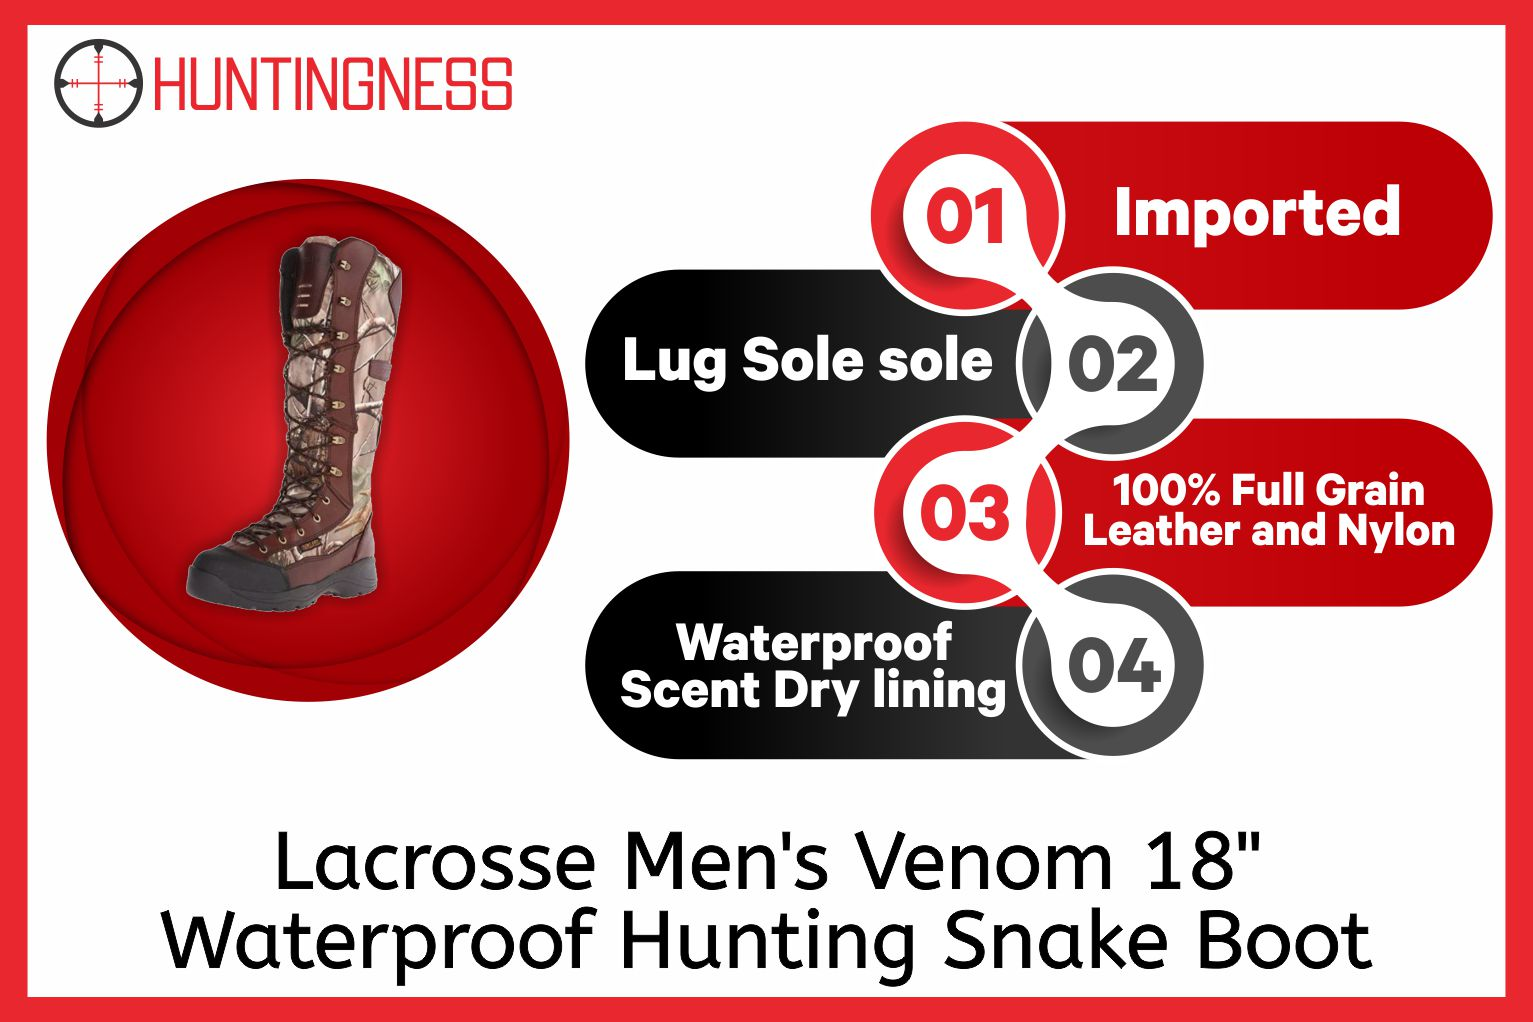 "Lacrosse Men's Venom 18"" Waterproof Hunting Snake Boot infographics"